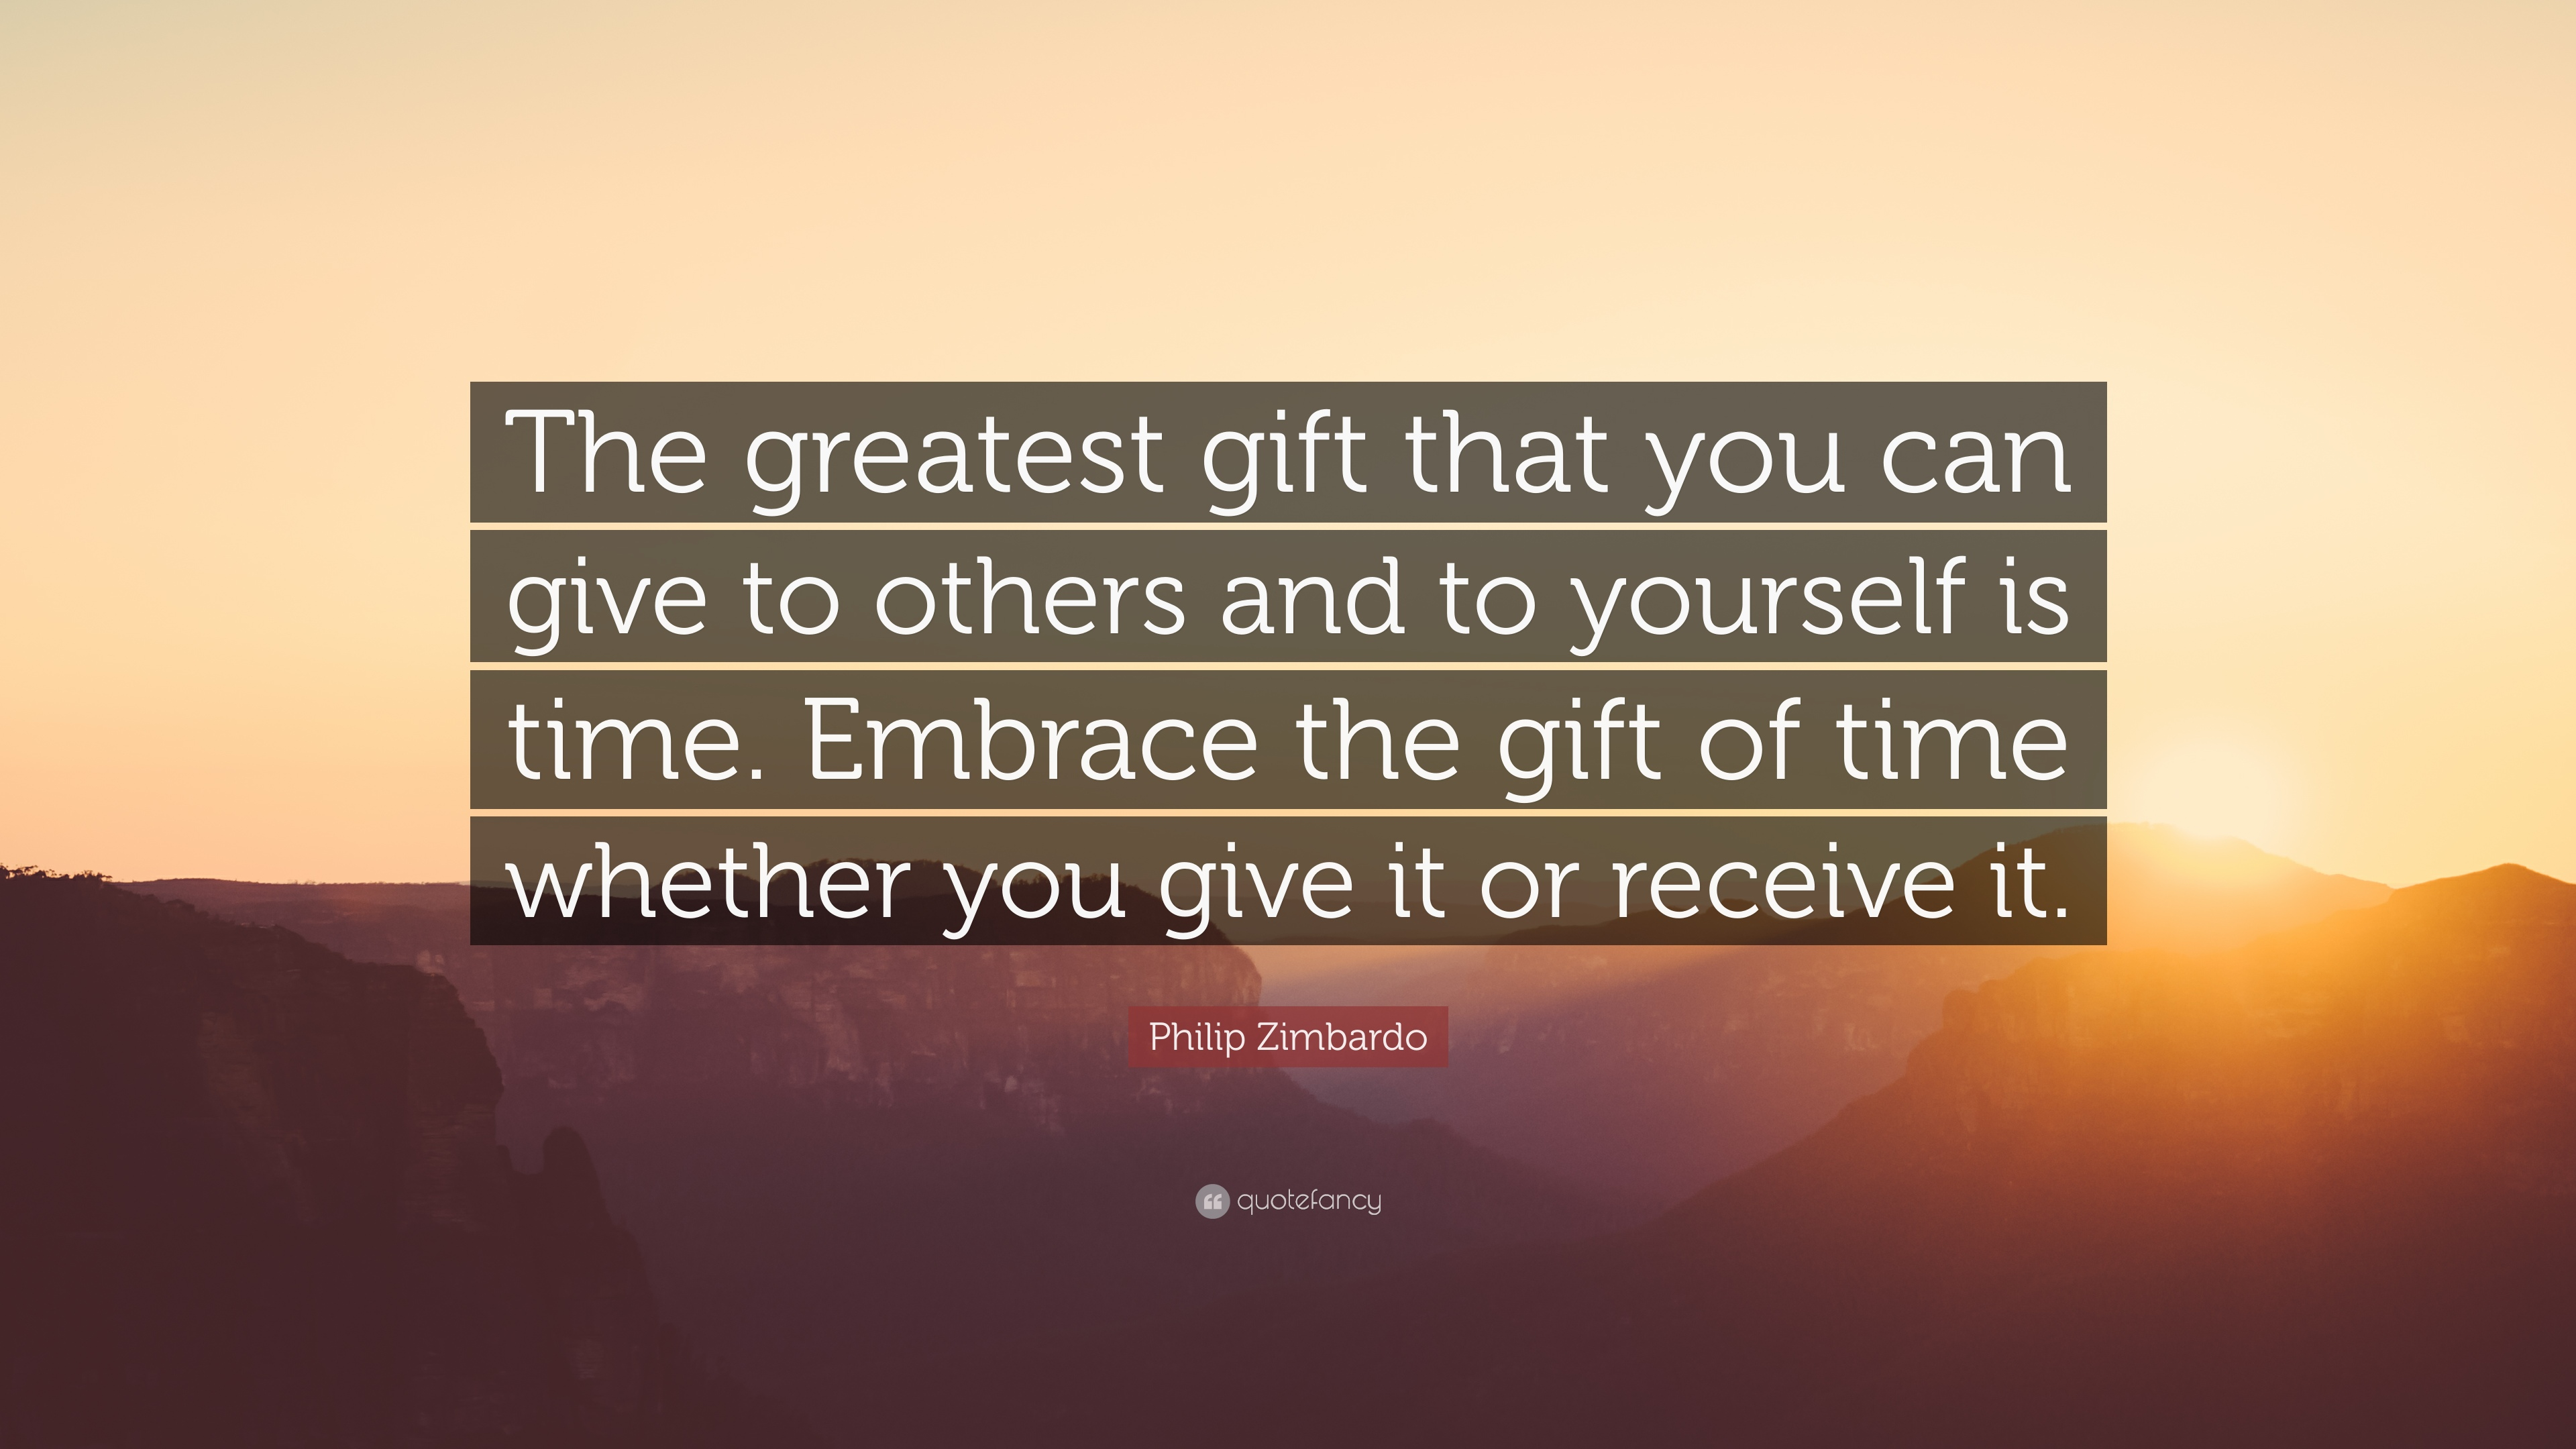 Philip Zimbardo Quote: U201cThe Greatest Gift That You Can Give To Others And To